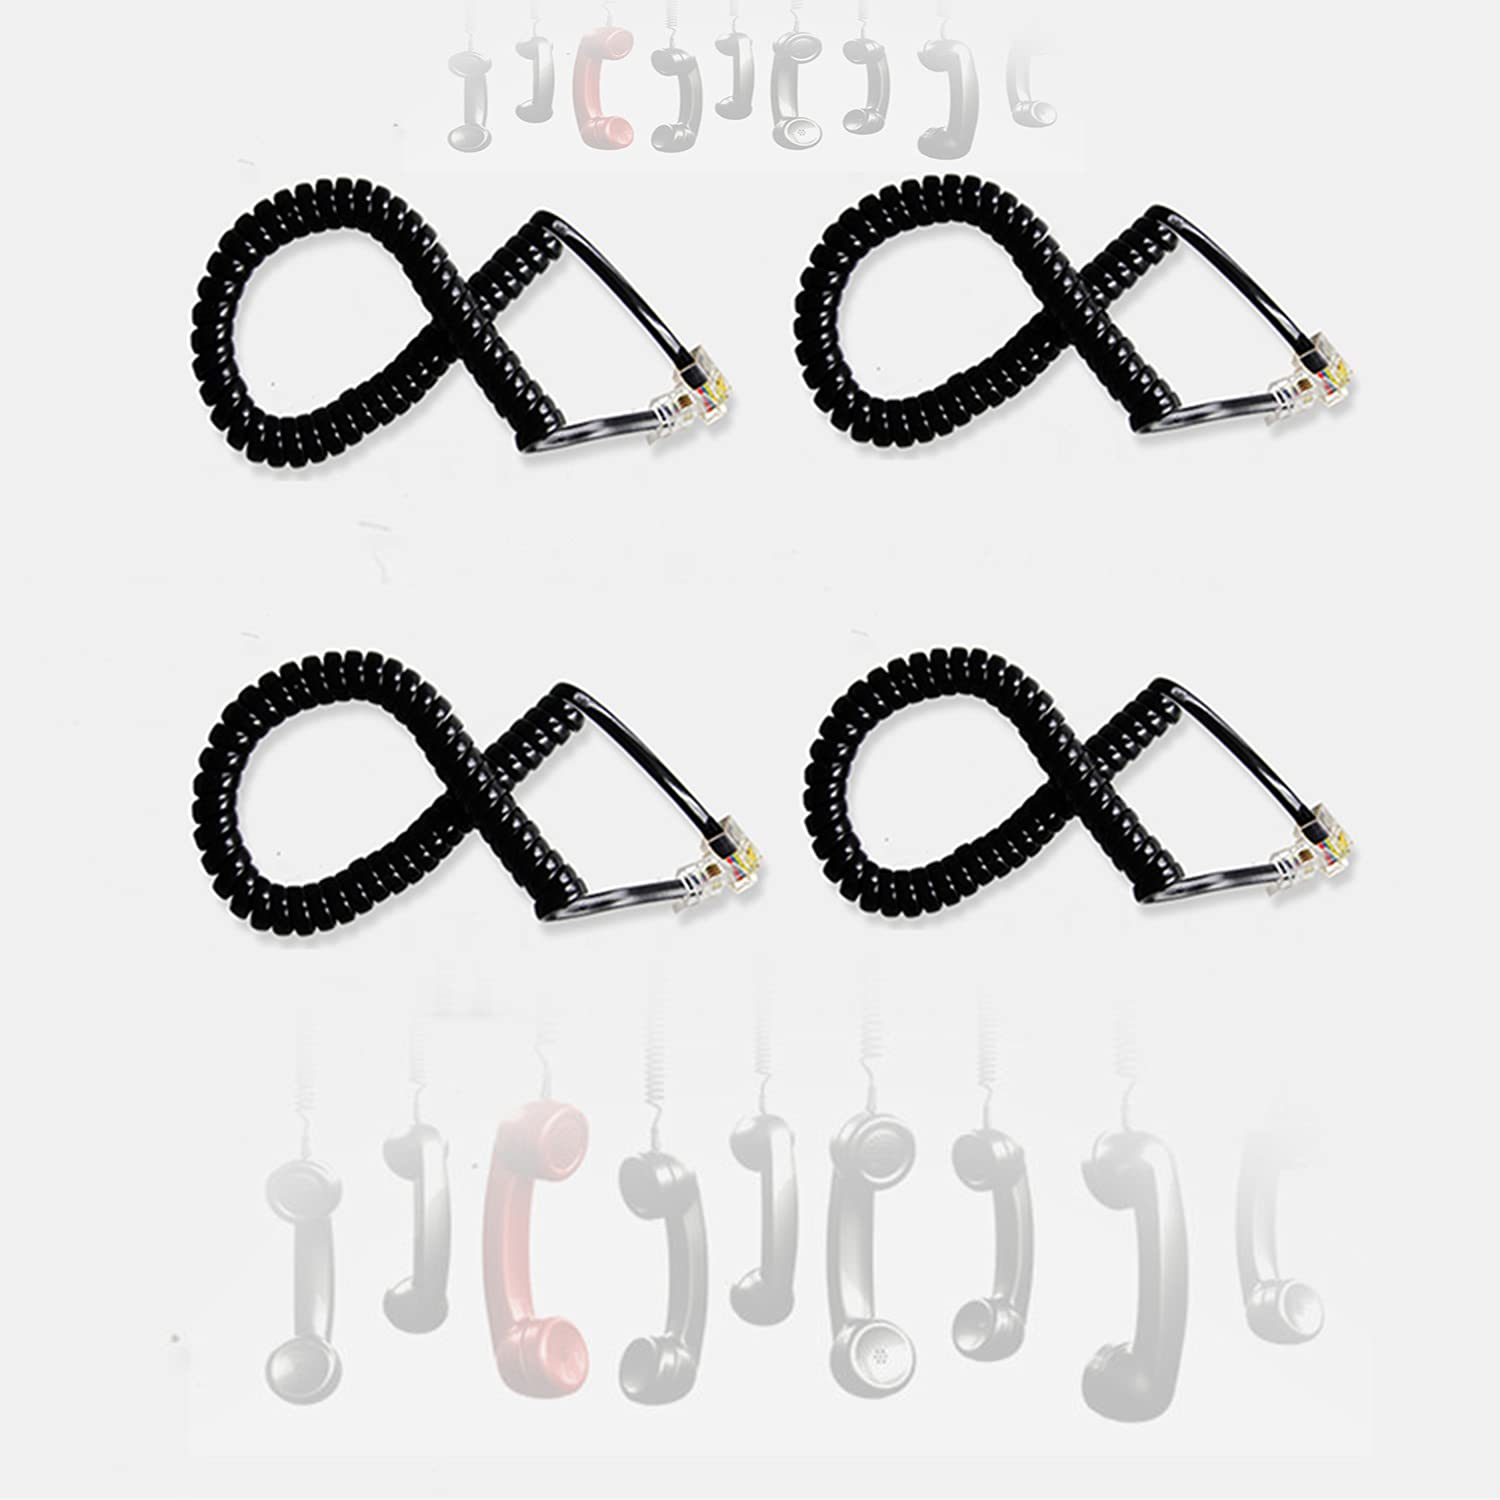 Telephone Cord, 8' Feet 4 Pack Black Coiled Telephone Phone Handset Cable Cord,Tangle-Free, Excellent Sound Quality, Handset Cable for Landline in Home or Office by-WNXJSX